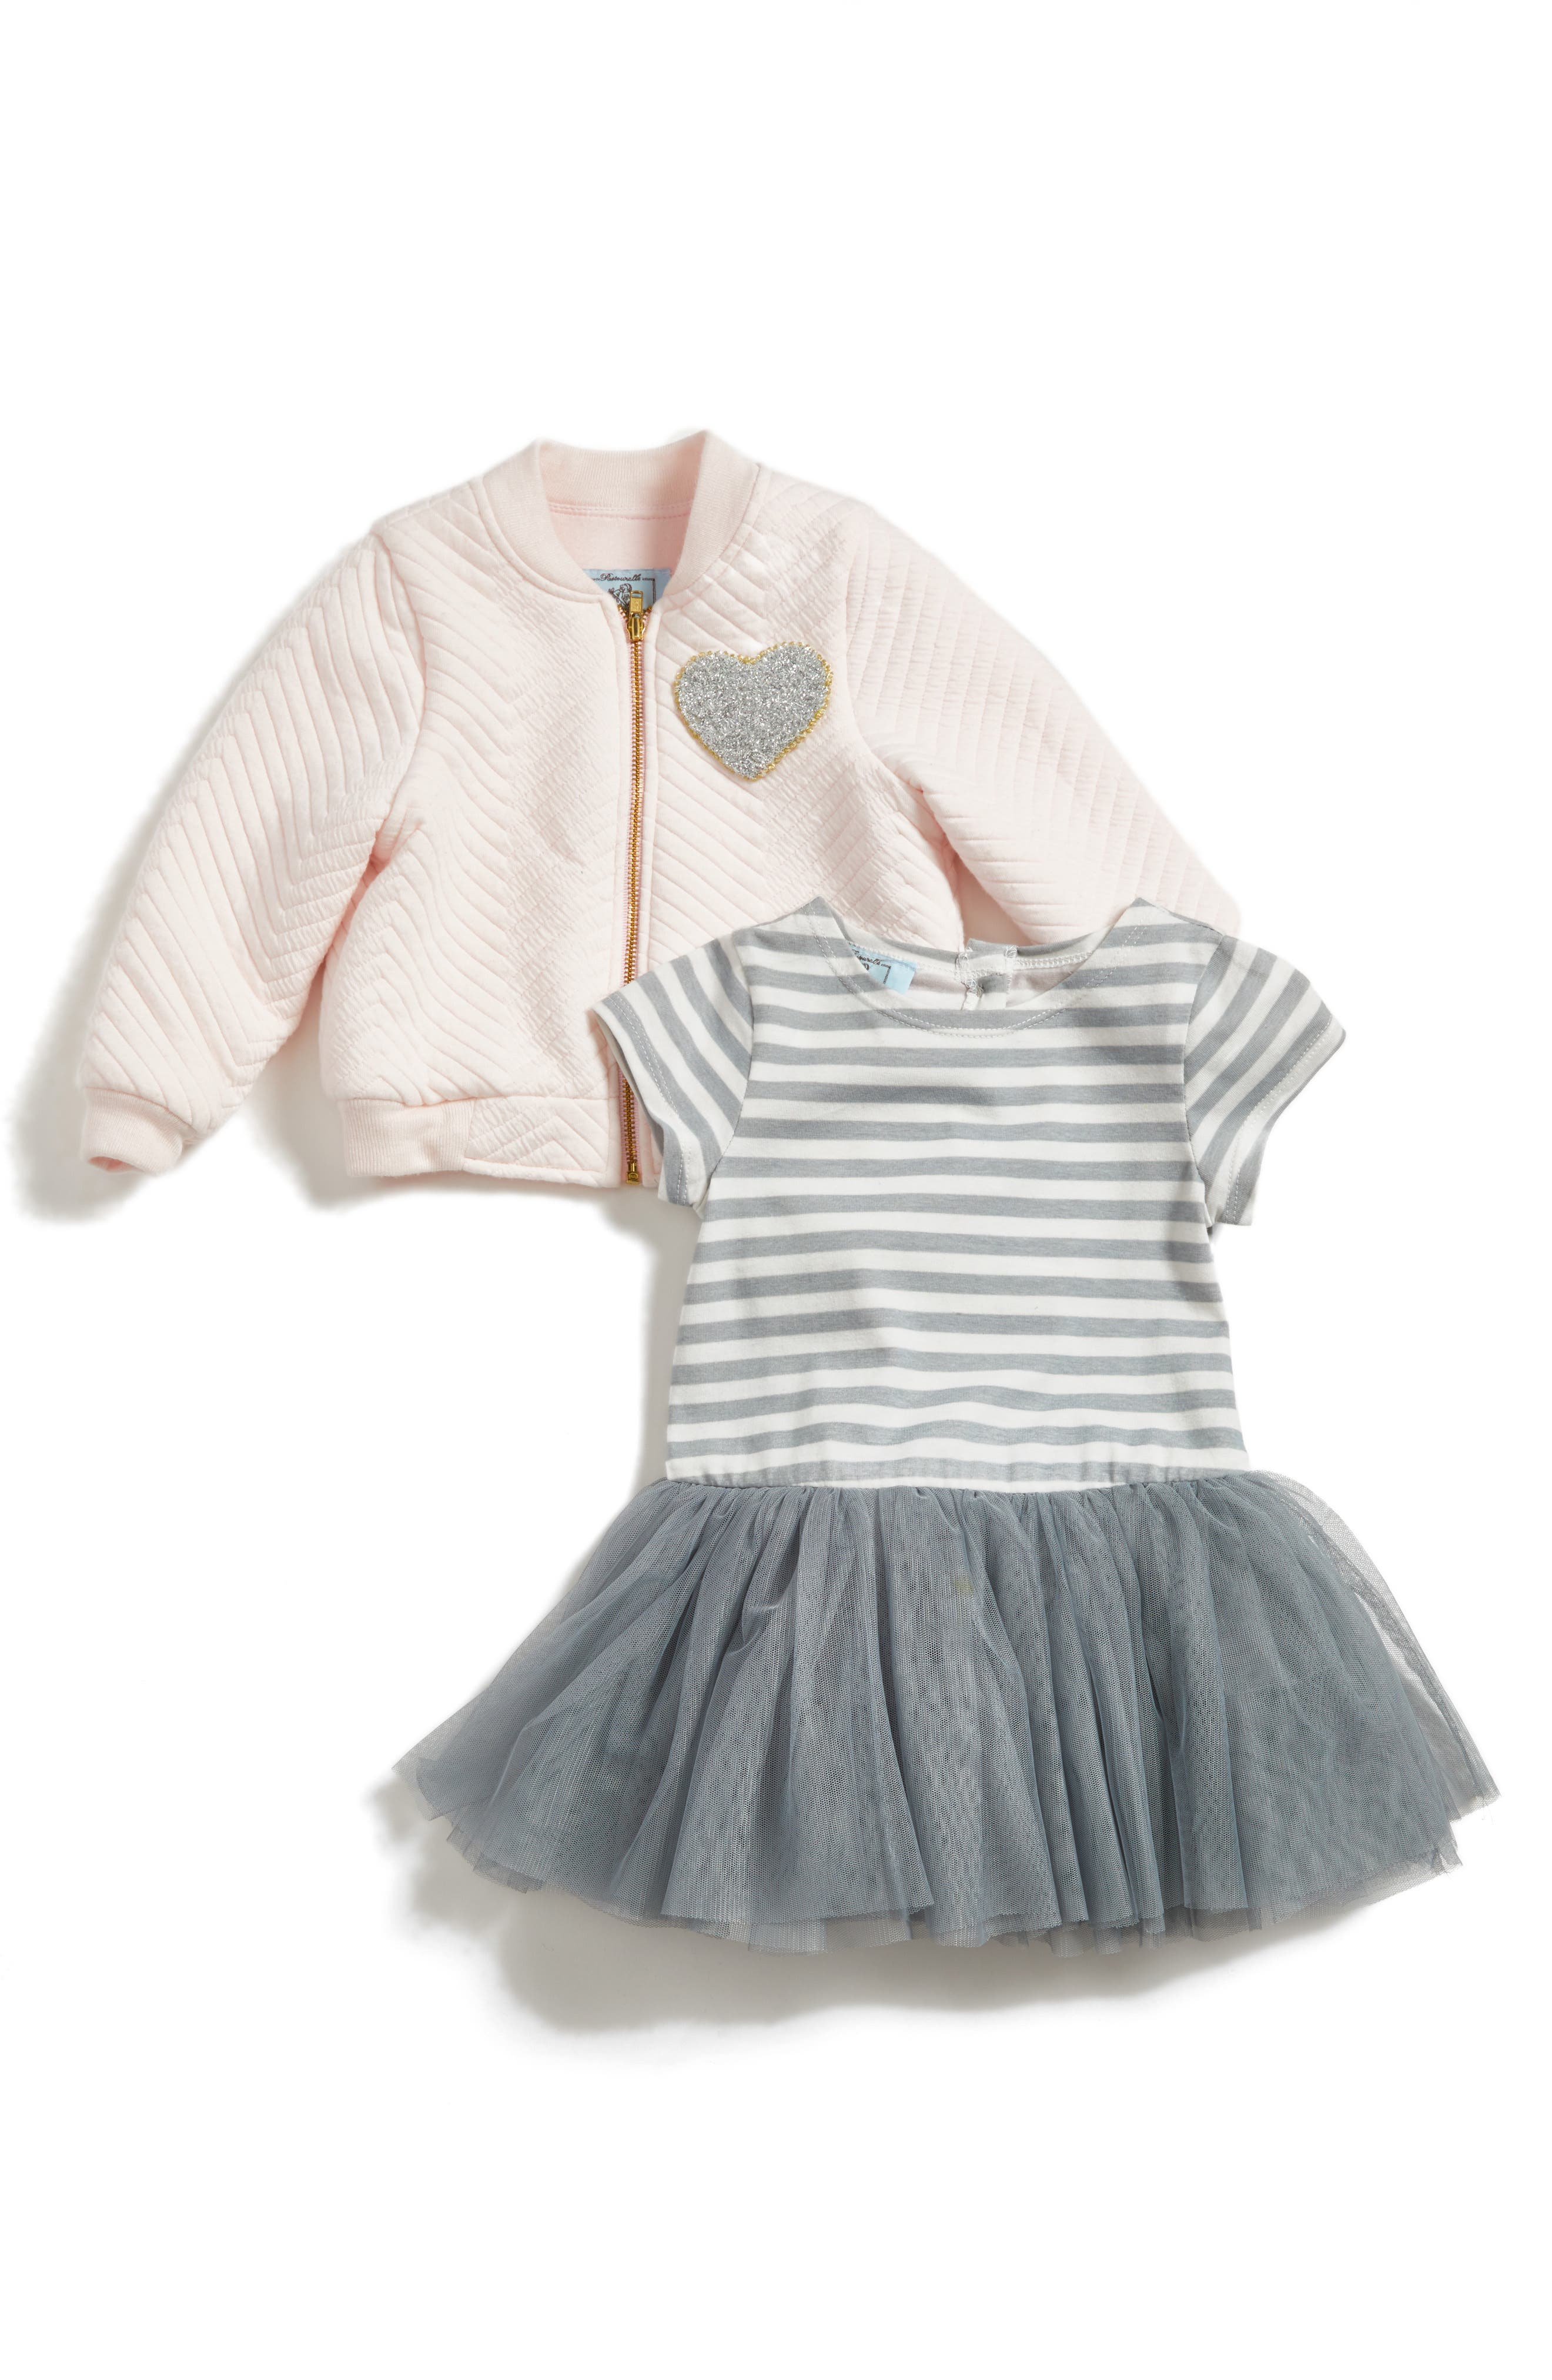 Pippa & Julie Bomber Jacket & Tulle Dress Set (Toddler Girls & Little Girls)